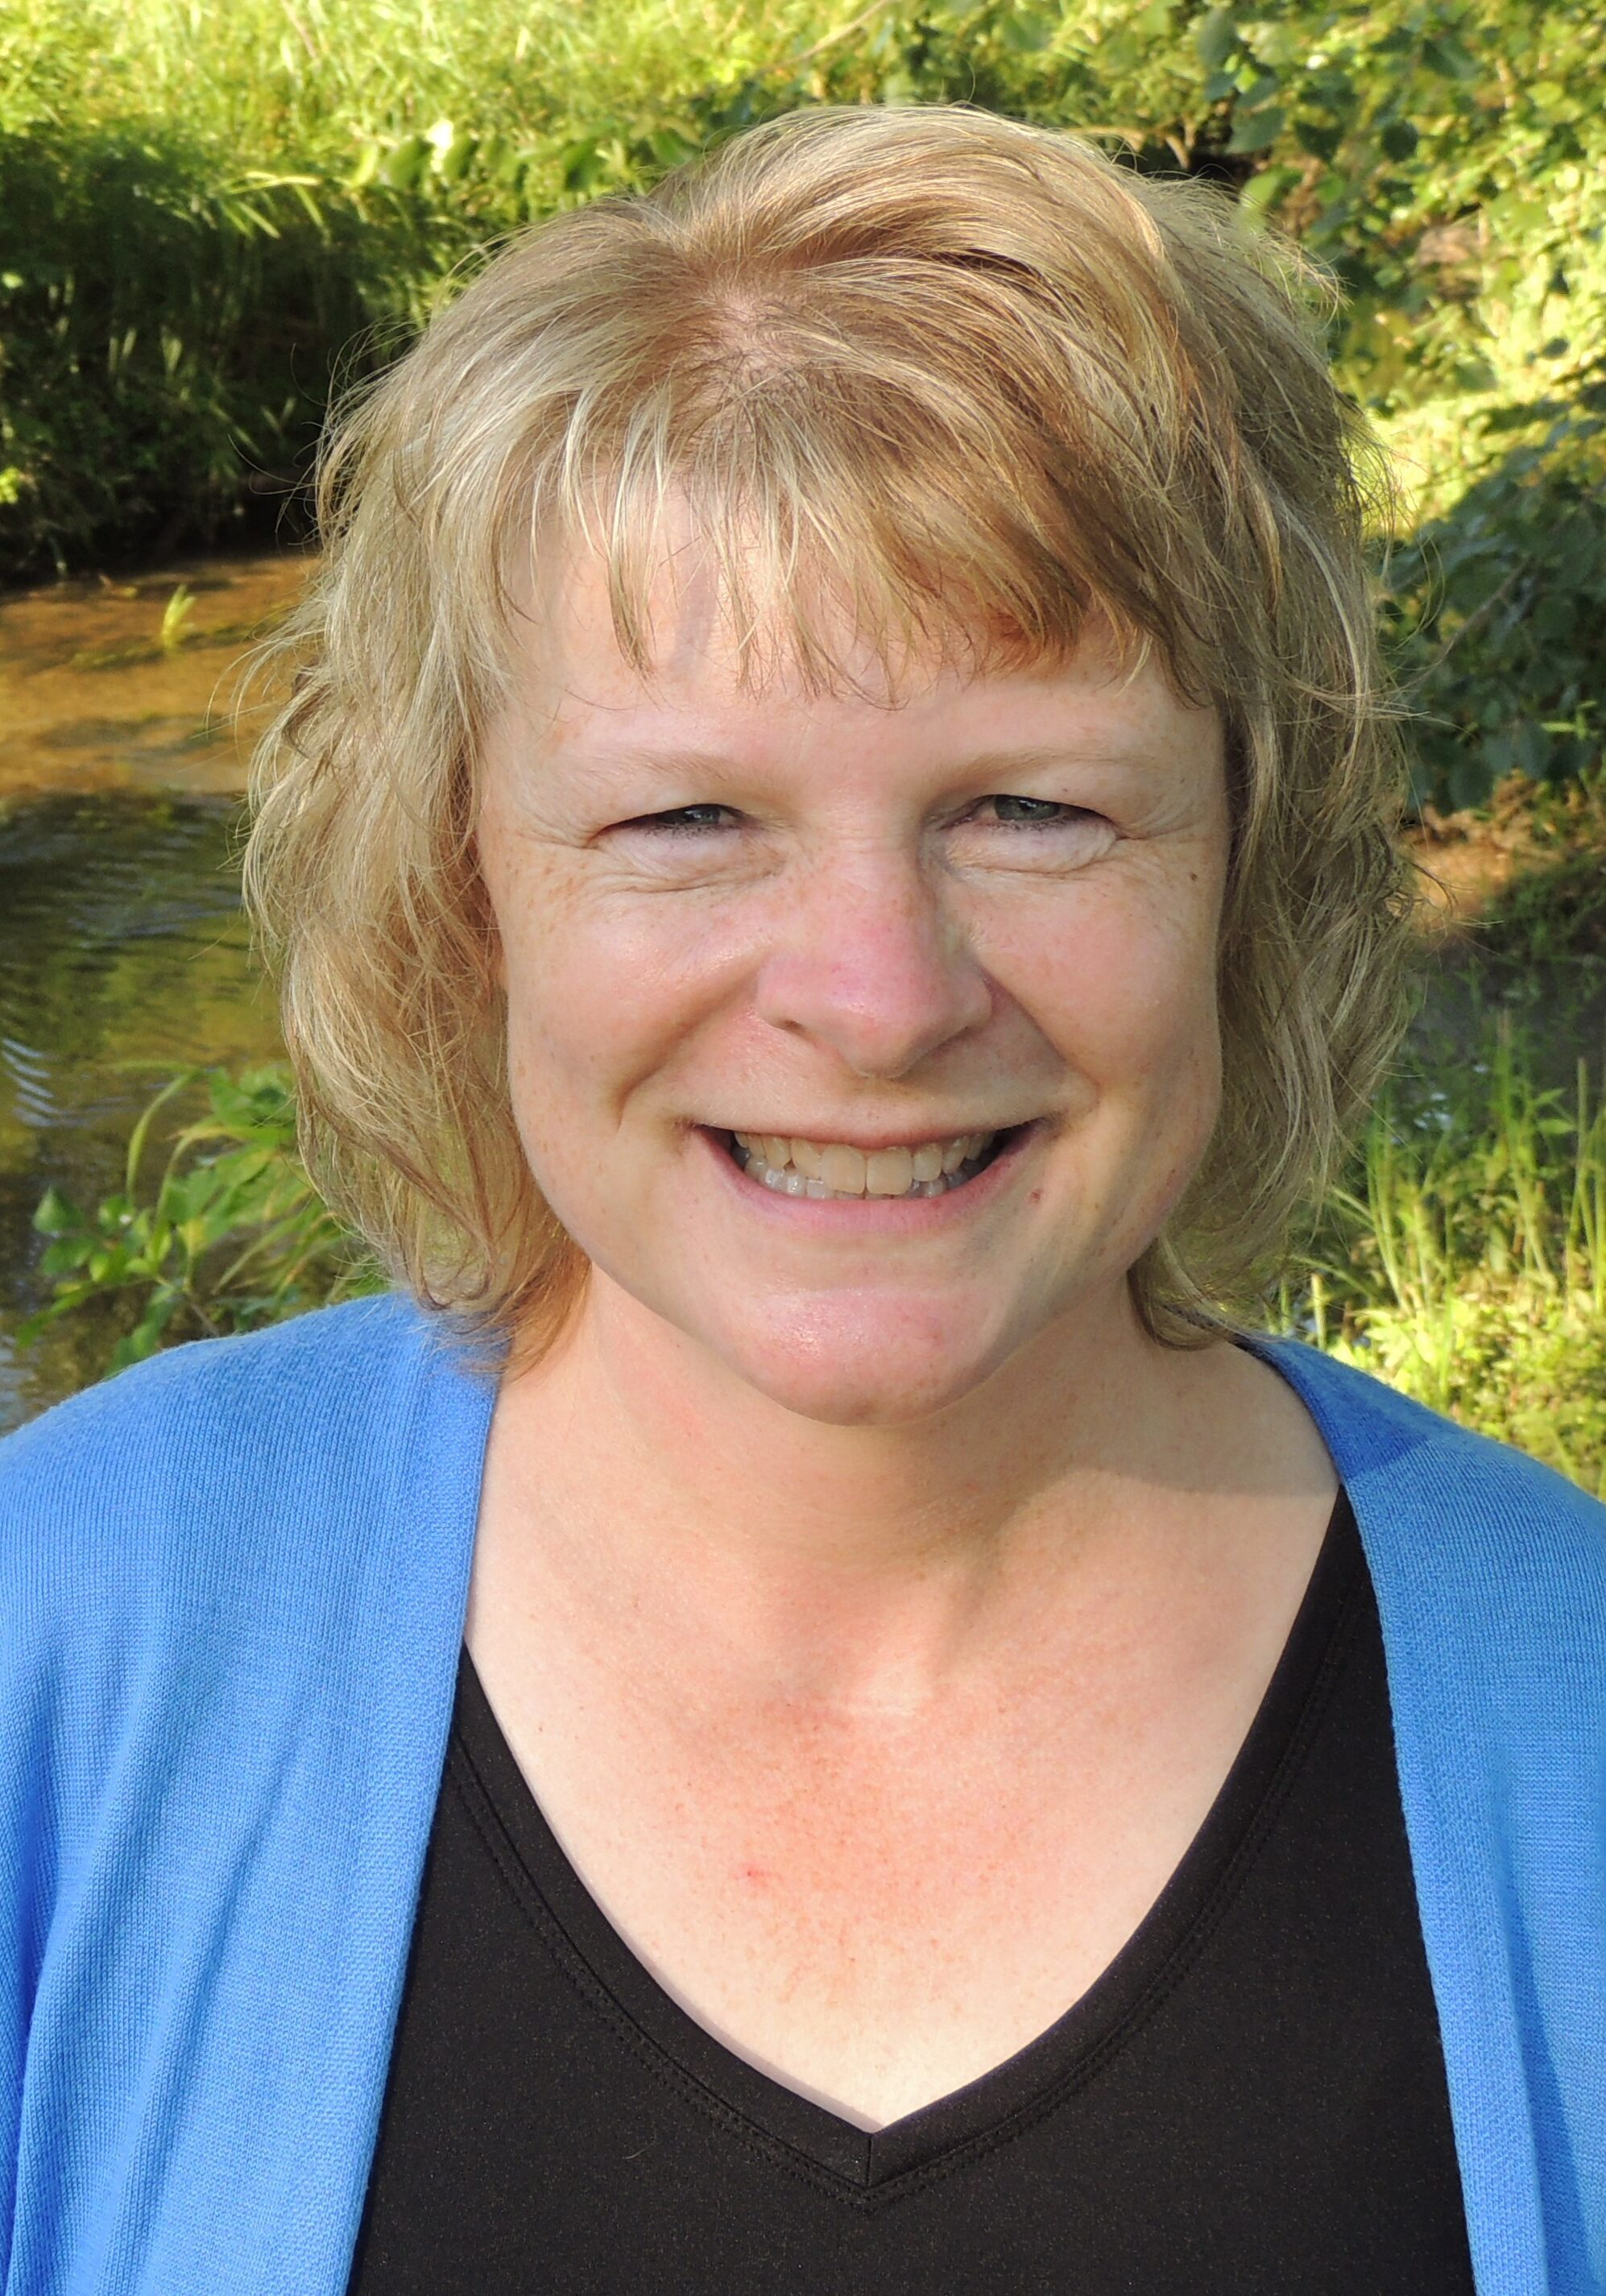 Jeanne Crump - Administrative Assistant